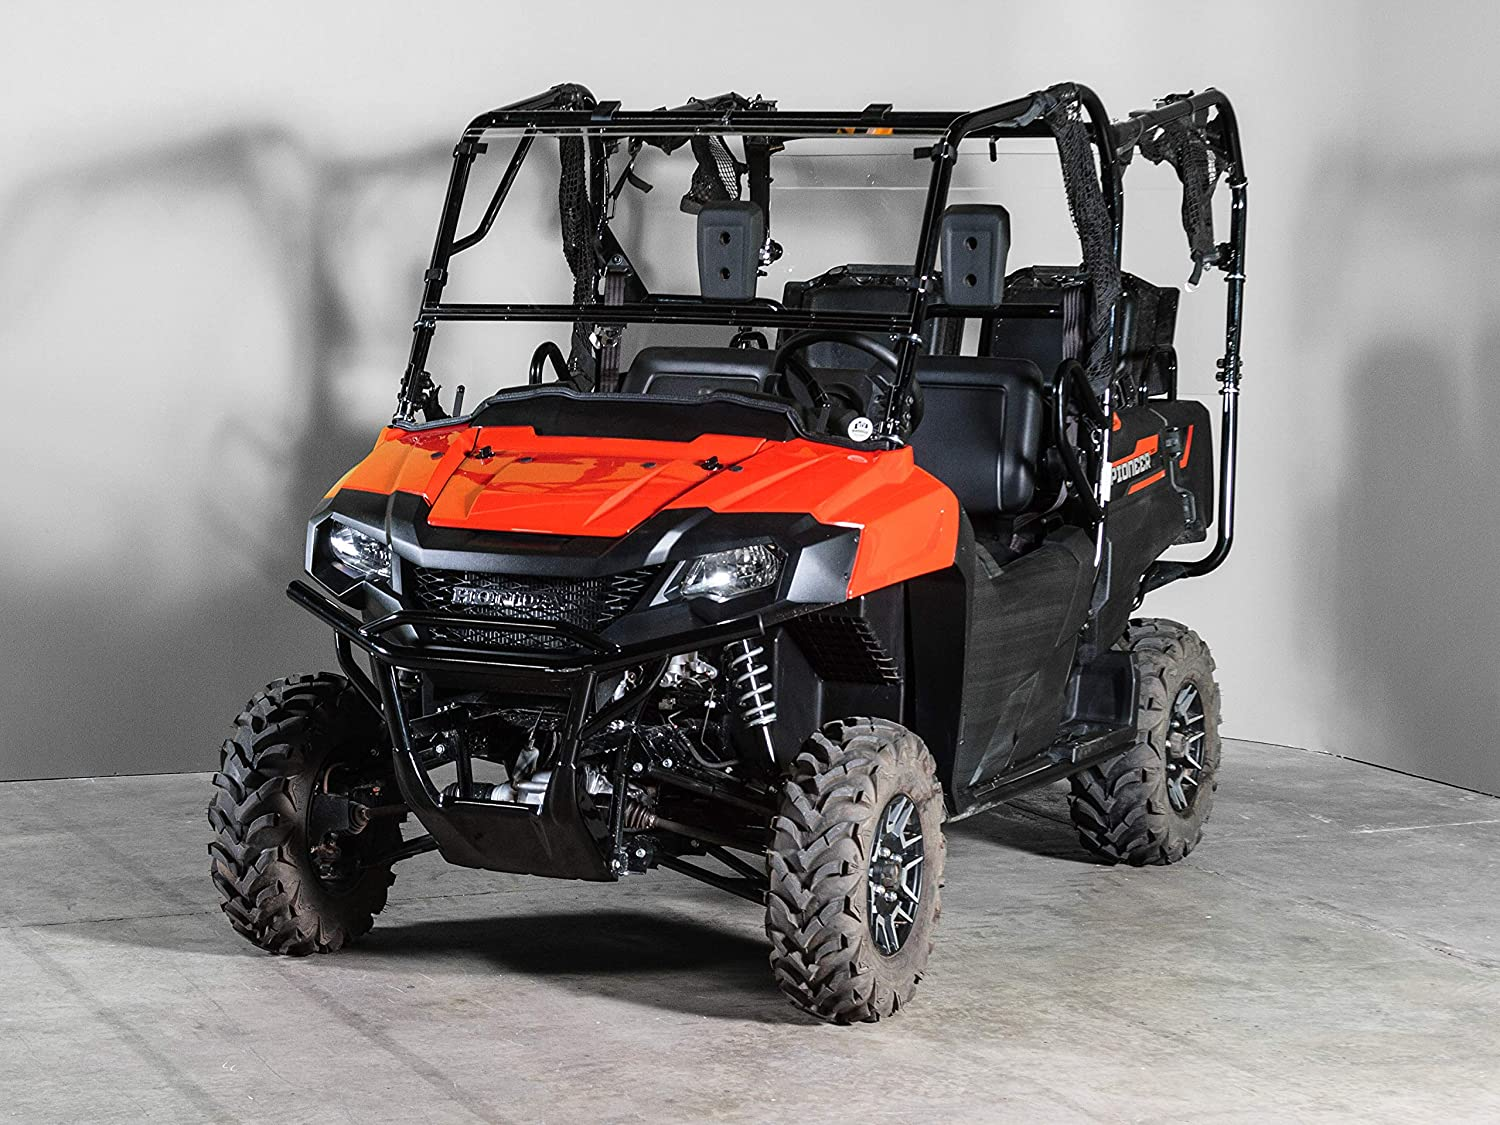 Half when you want and full when you need. HONDA PIONEER 500 Full-Tilt Windshield-Best of both worlds Does not fit the 700 or 1000 Made in America